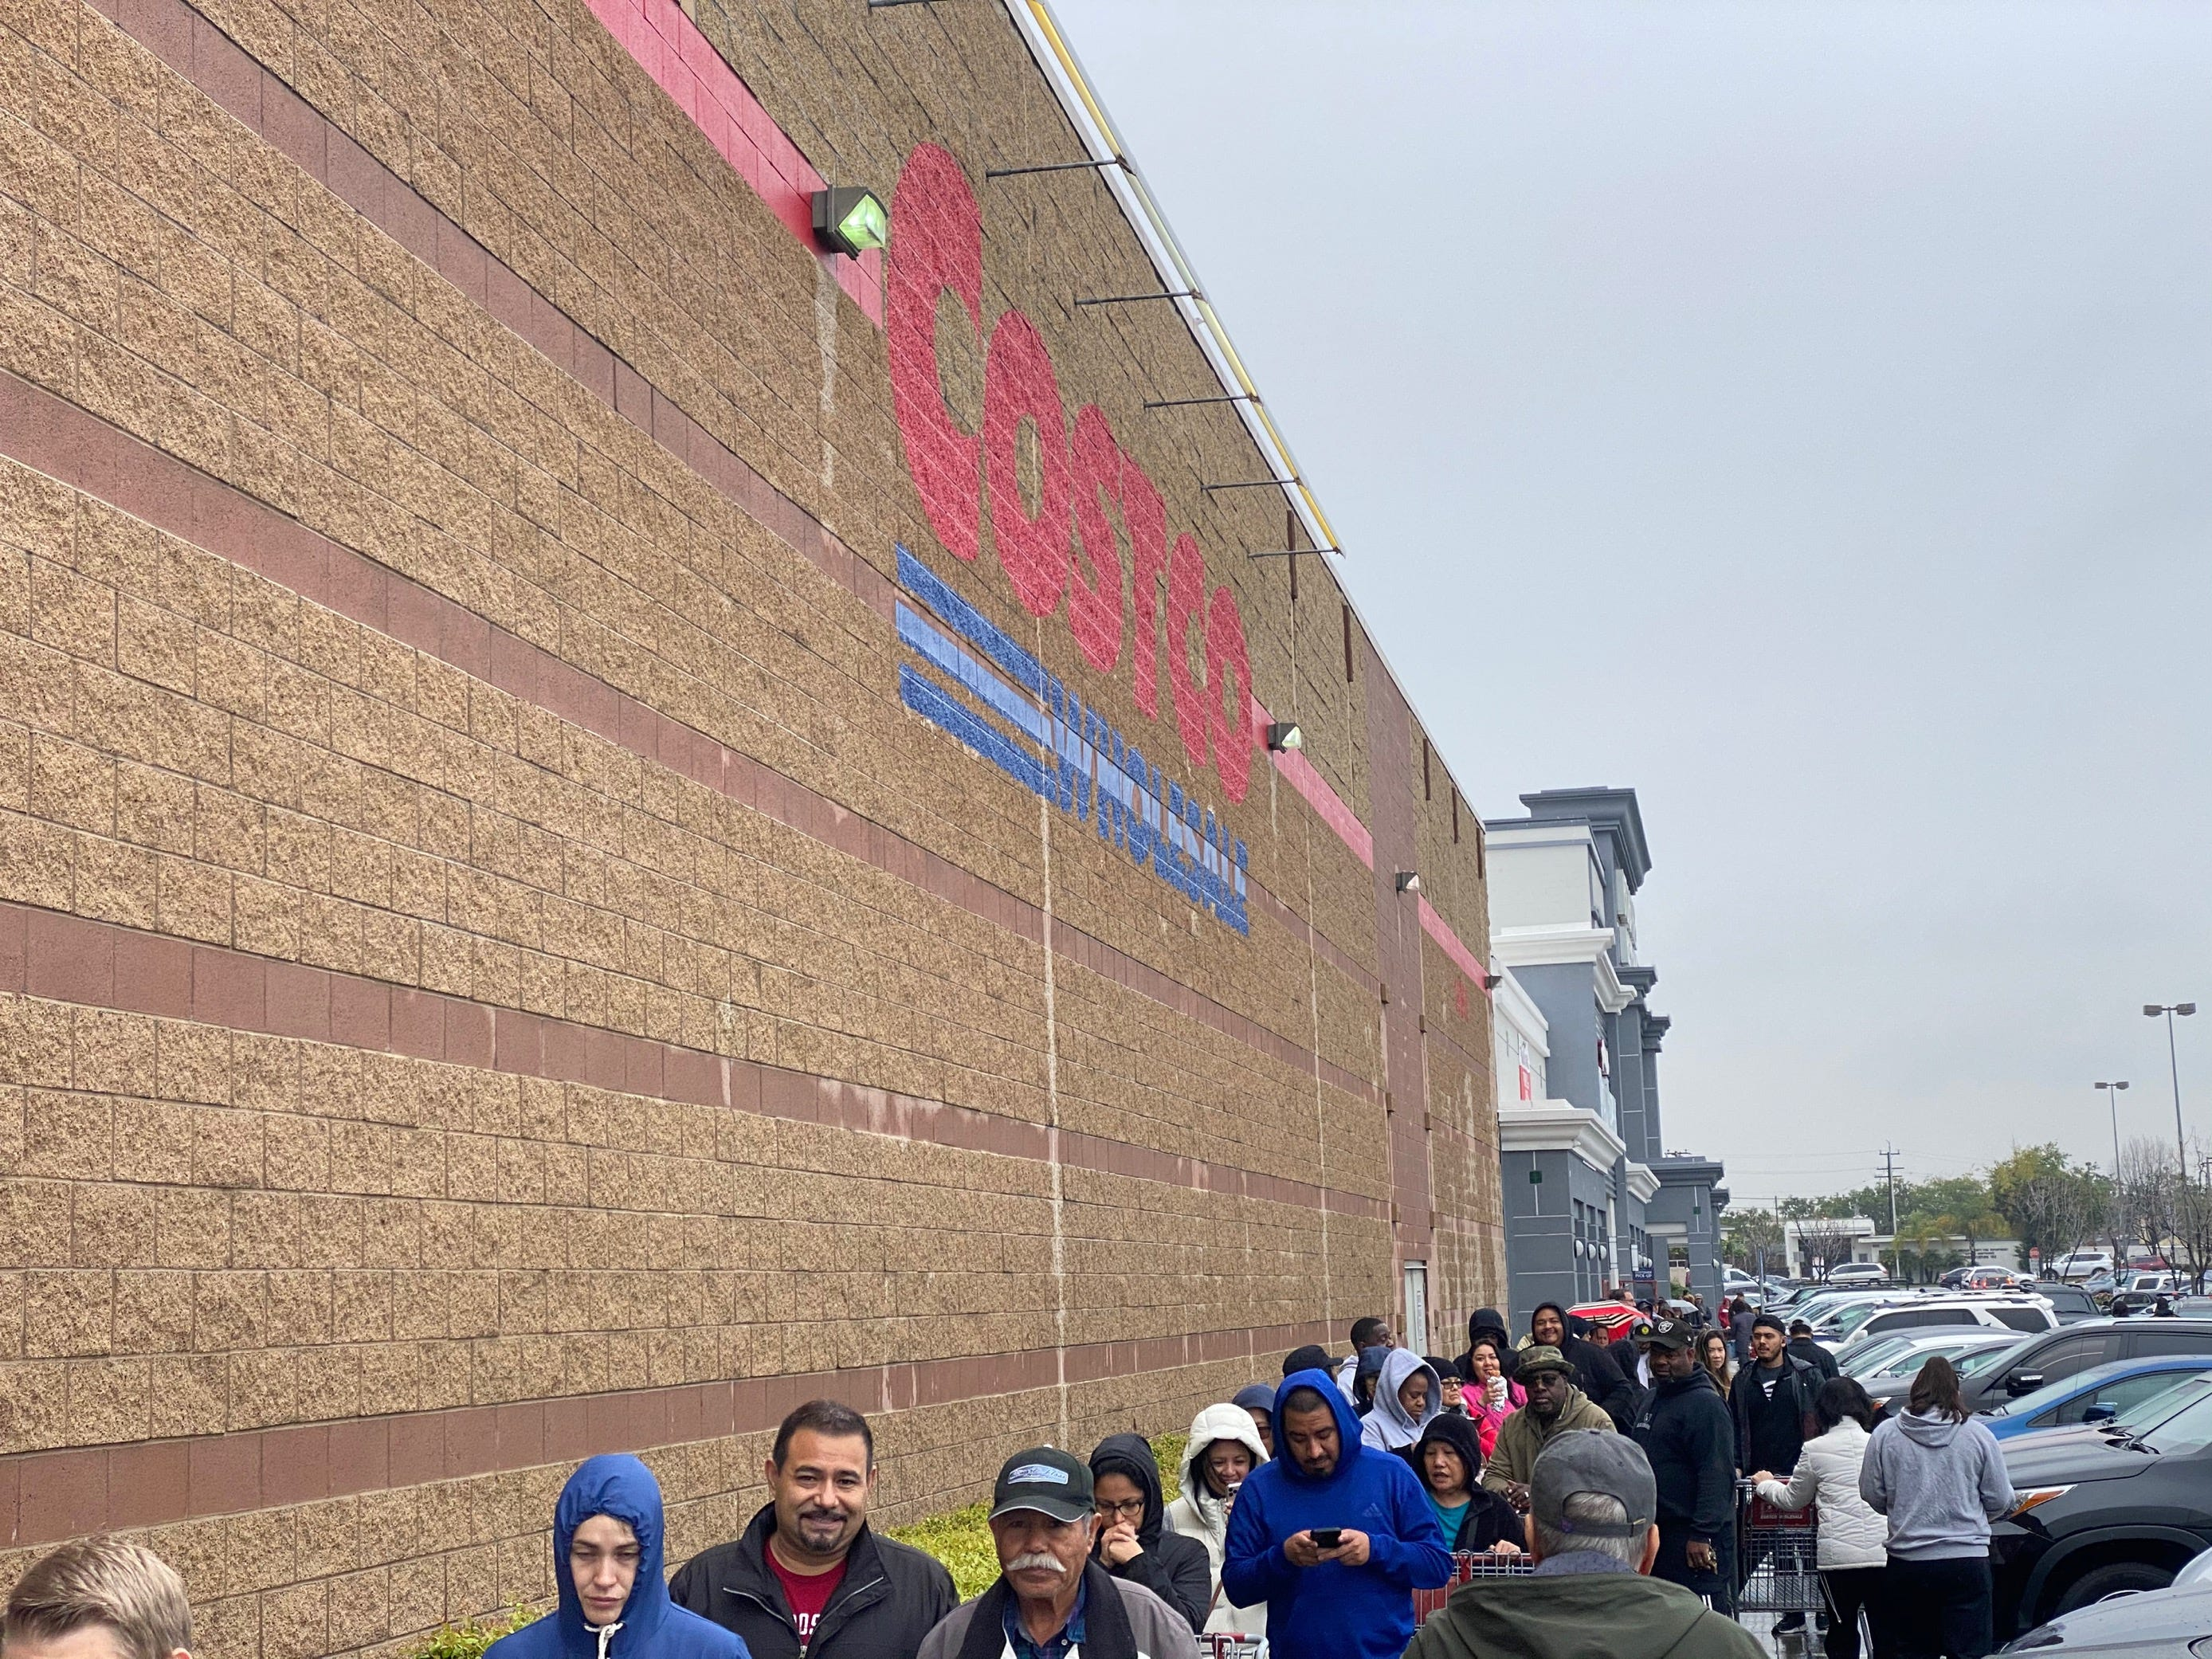 Preparing for the coronavirus: Shoppers are finding empty shelves, long lines at stores nationwide